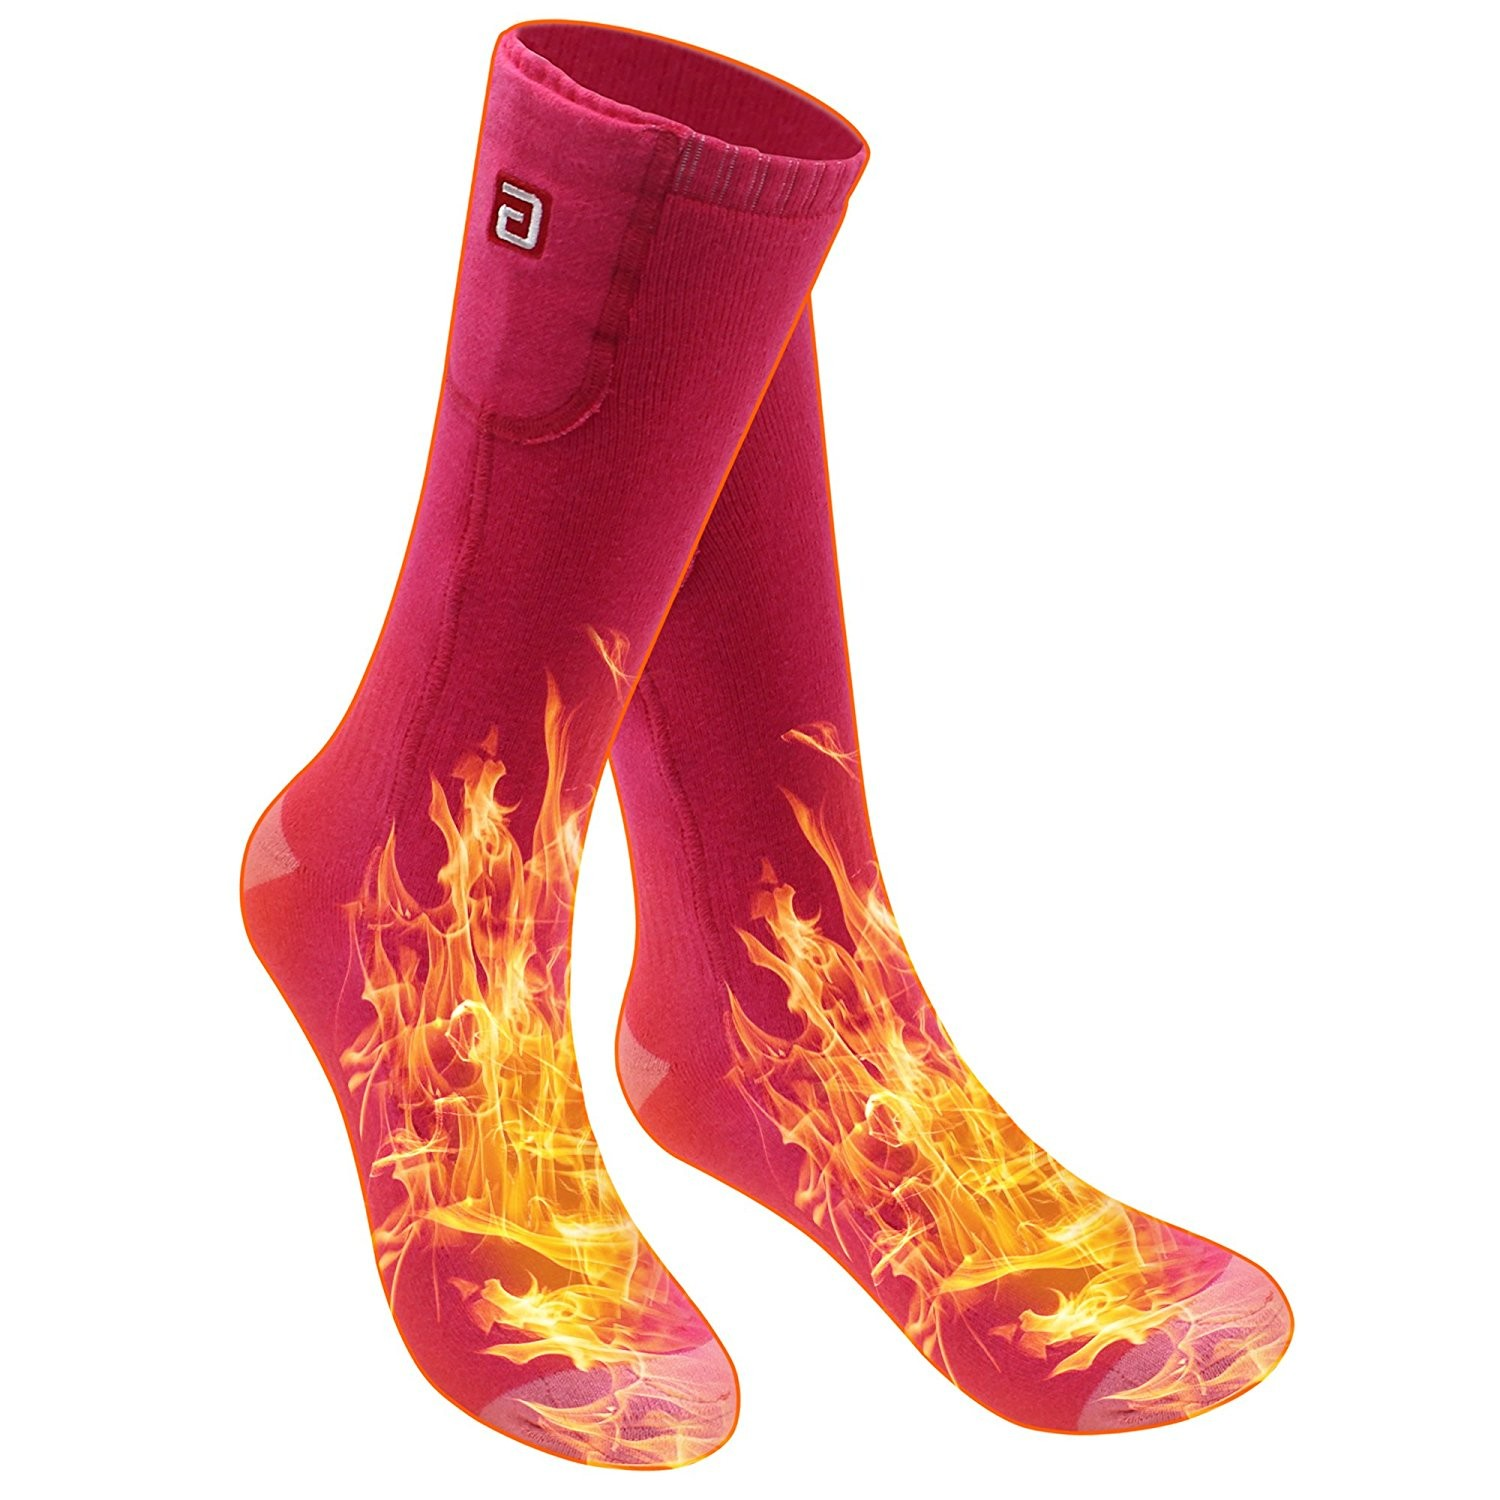 Autocastle Rechargeable Battery Heated Socks